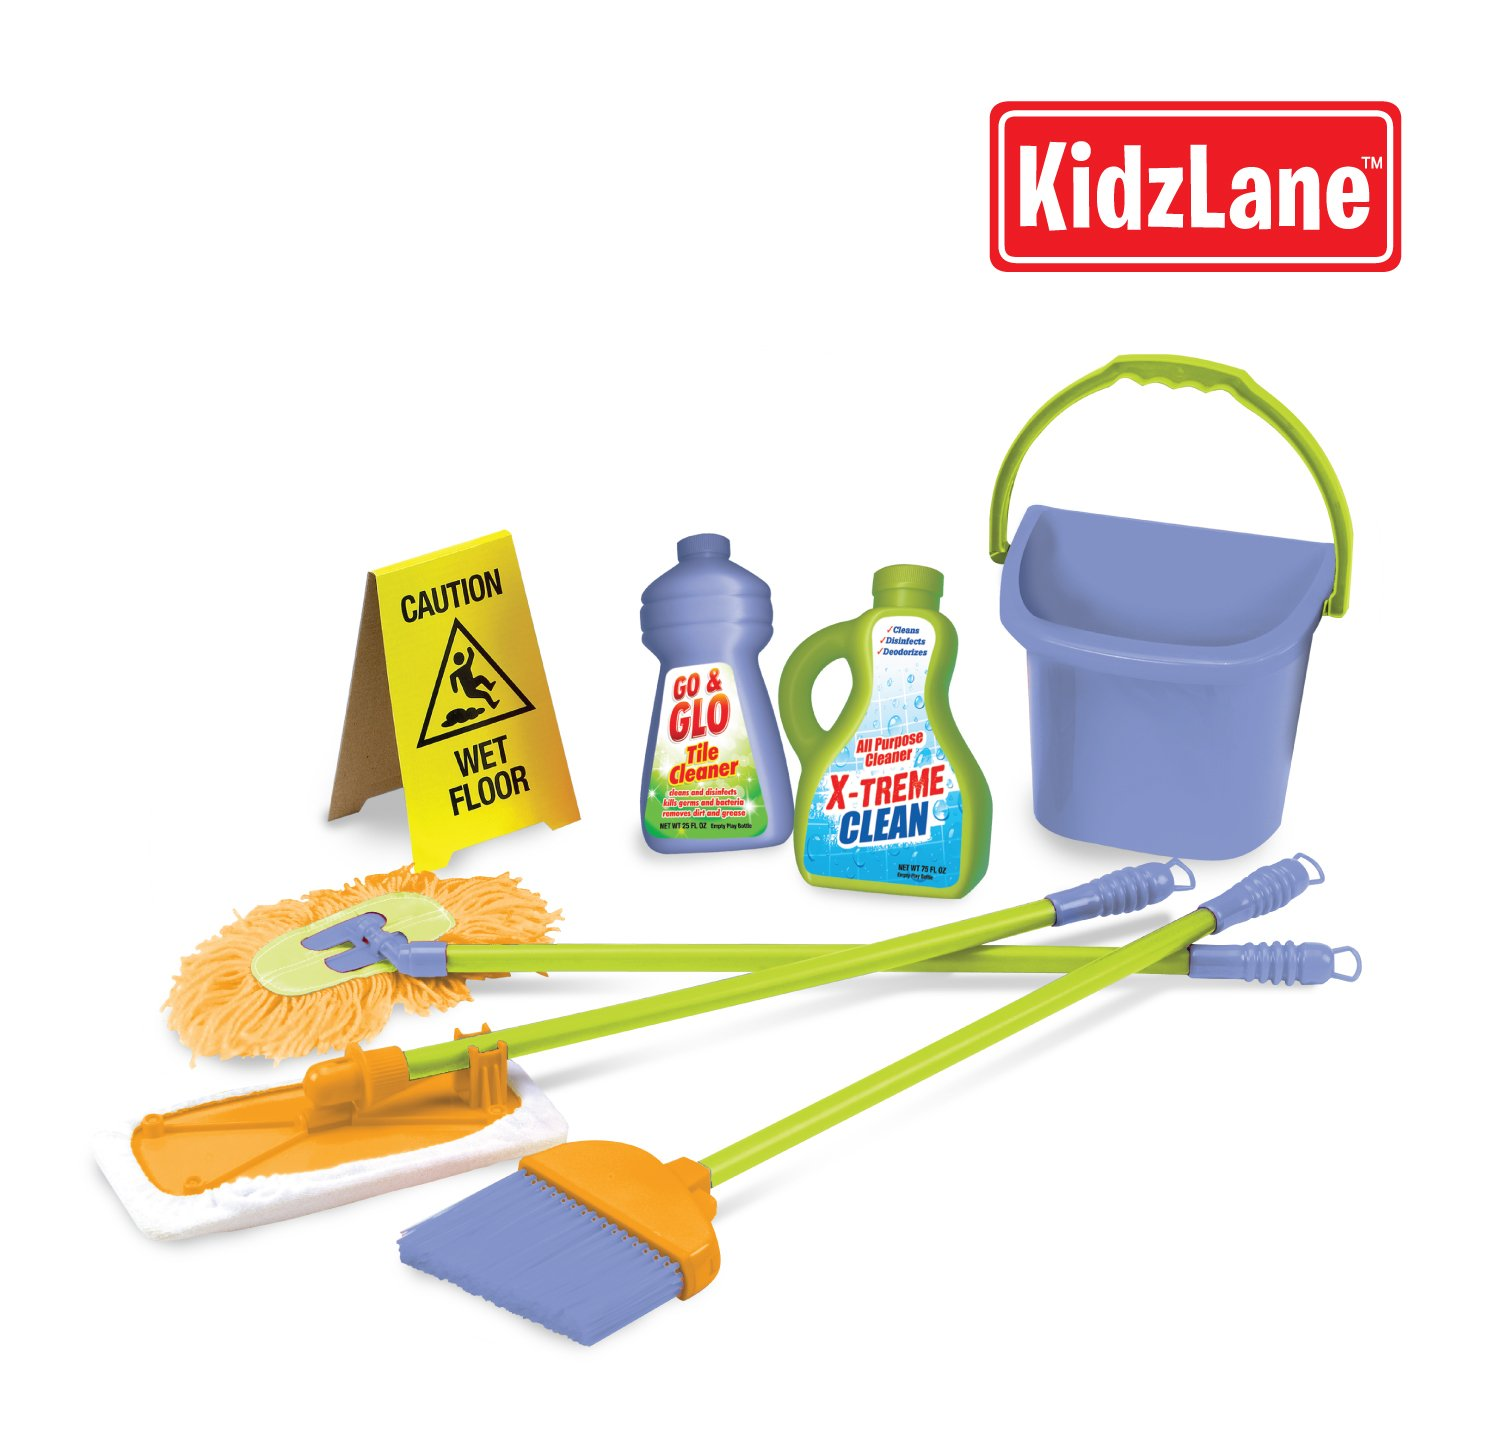 Kidzlane Kid Sized Cleaning Set Review I M No Domestic